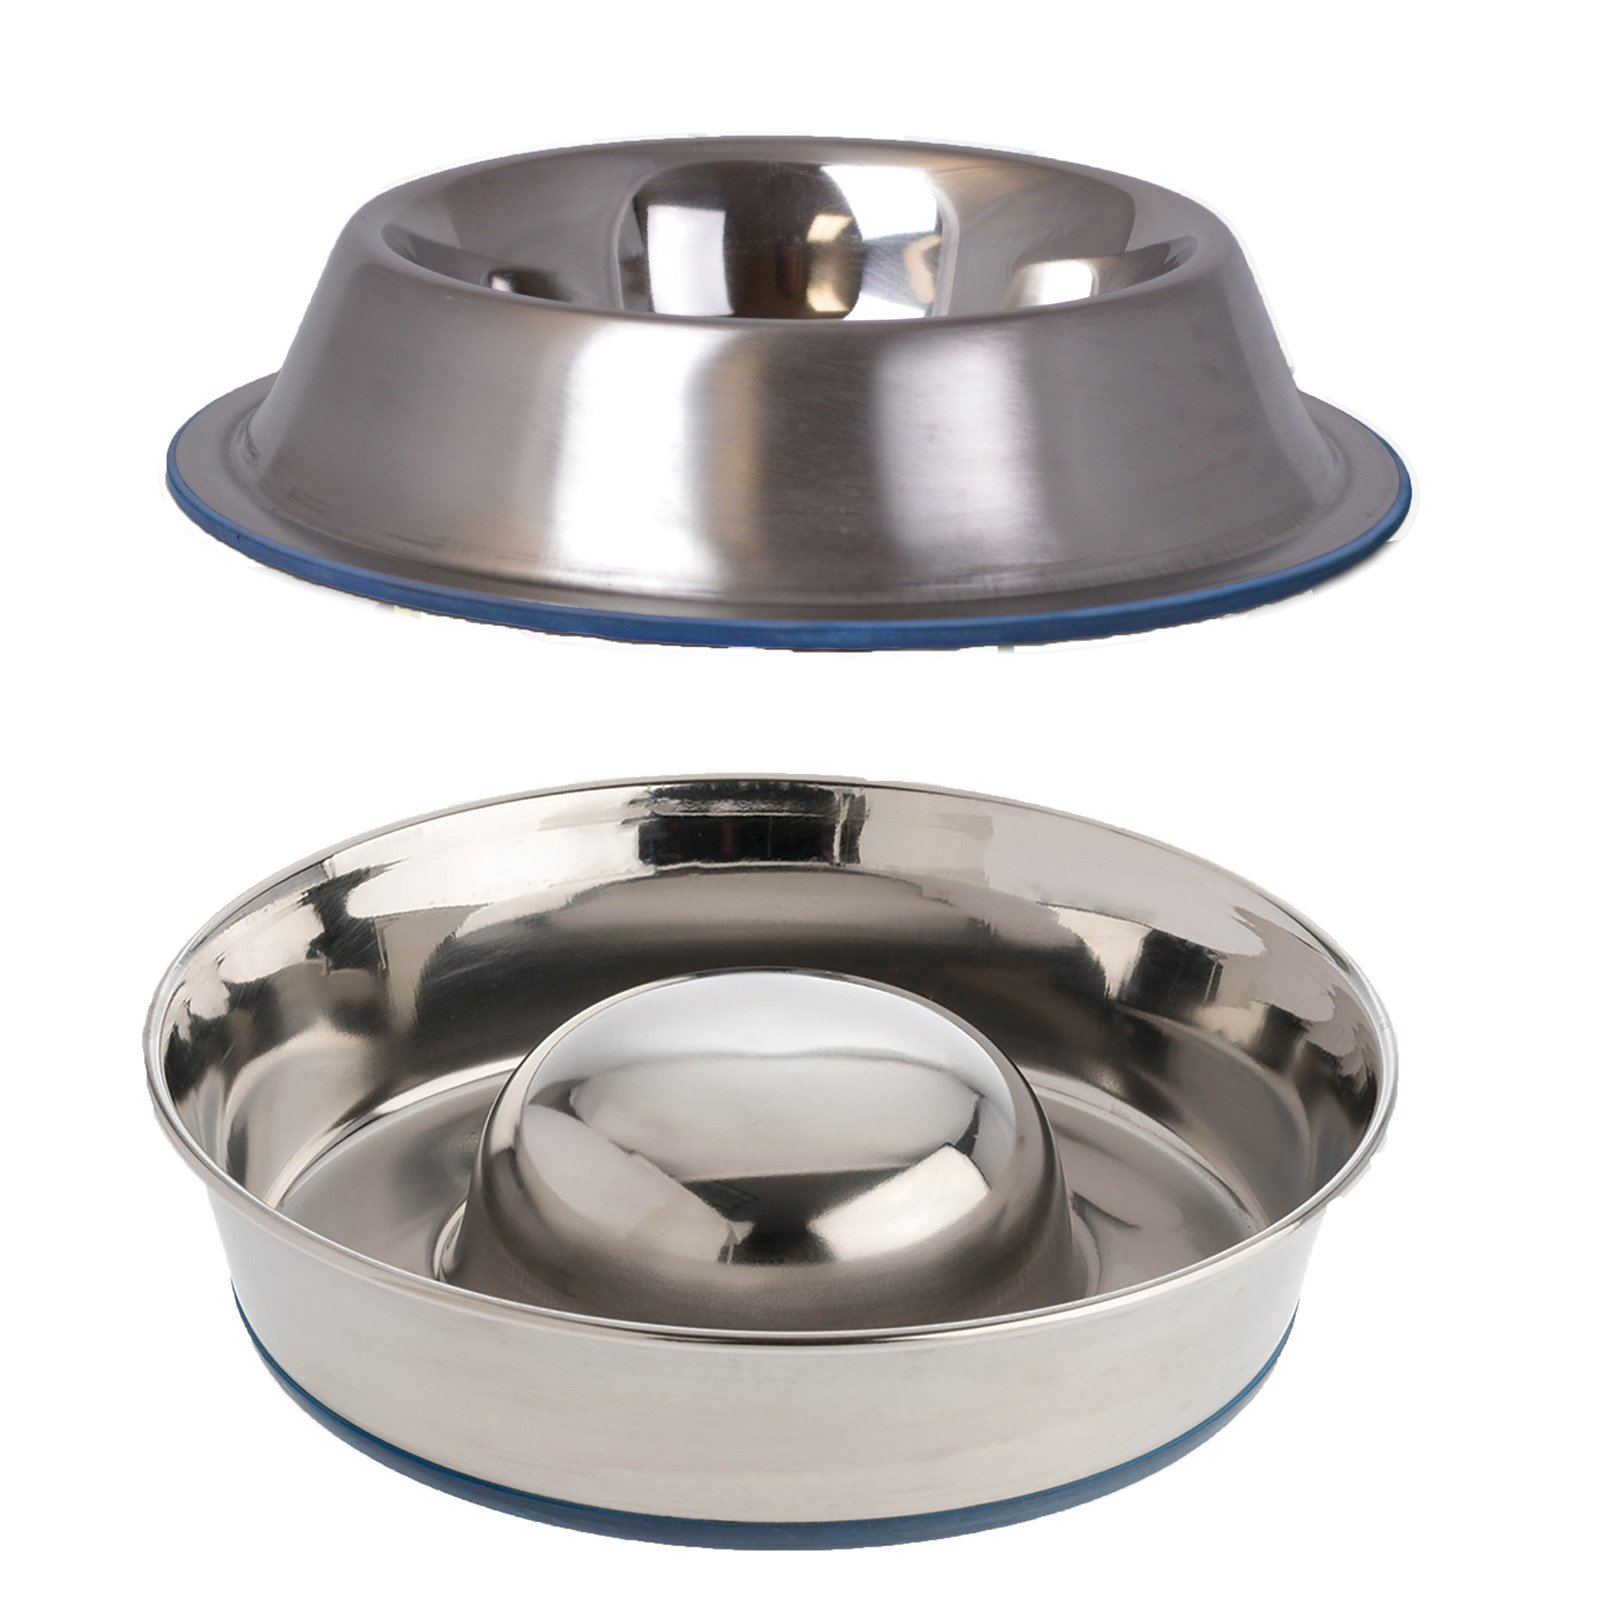 OurPets Slow Feed Bowl and No Tip Food Bowl